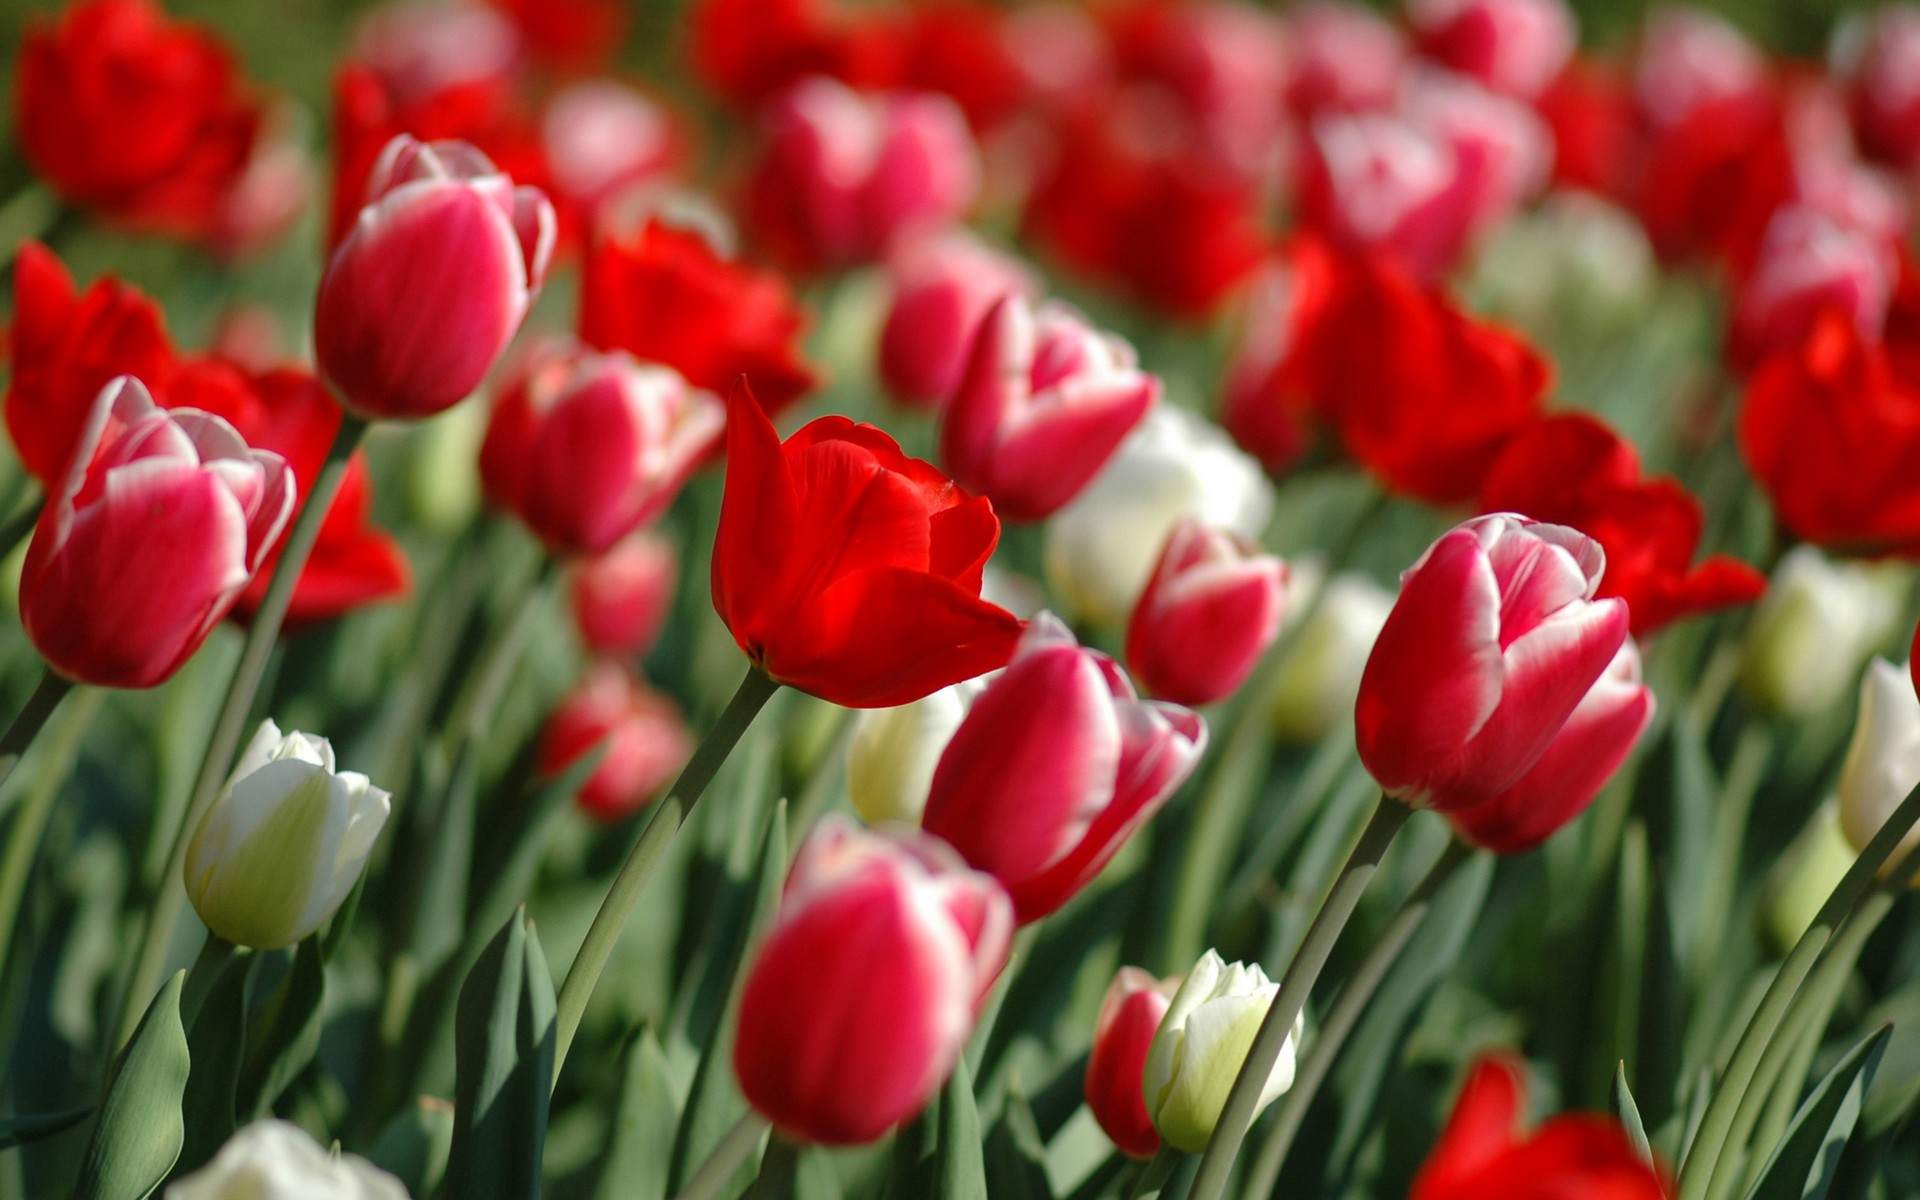 Red Tulips in spring Facebook Covers Wallpapers HD 1920x1200